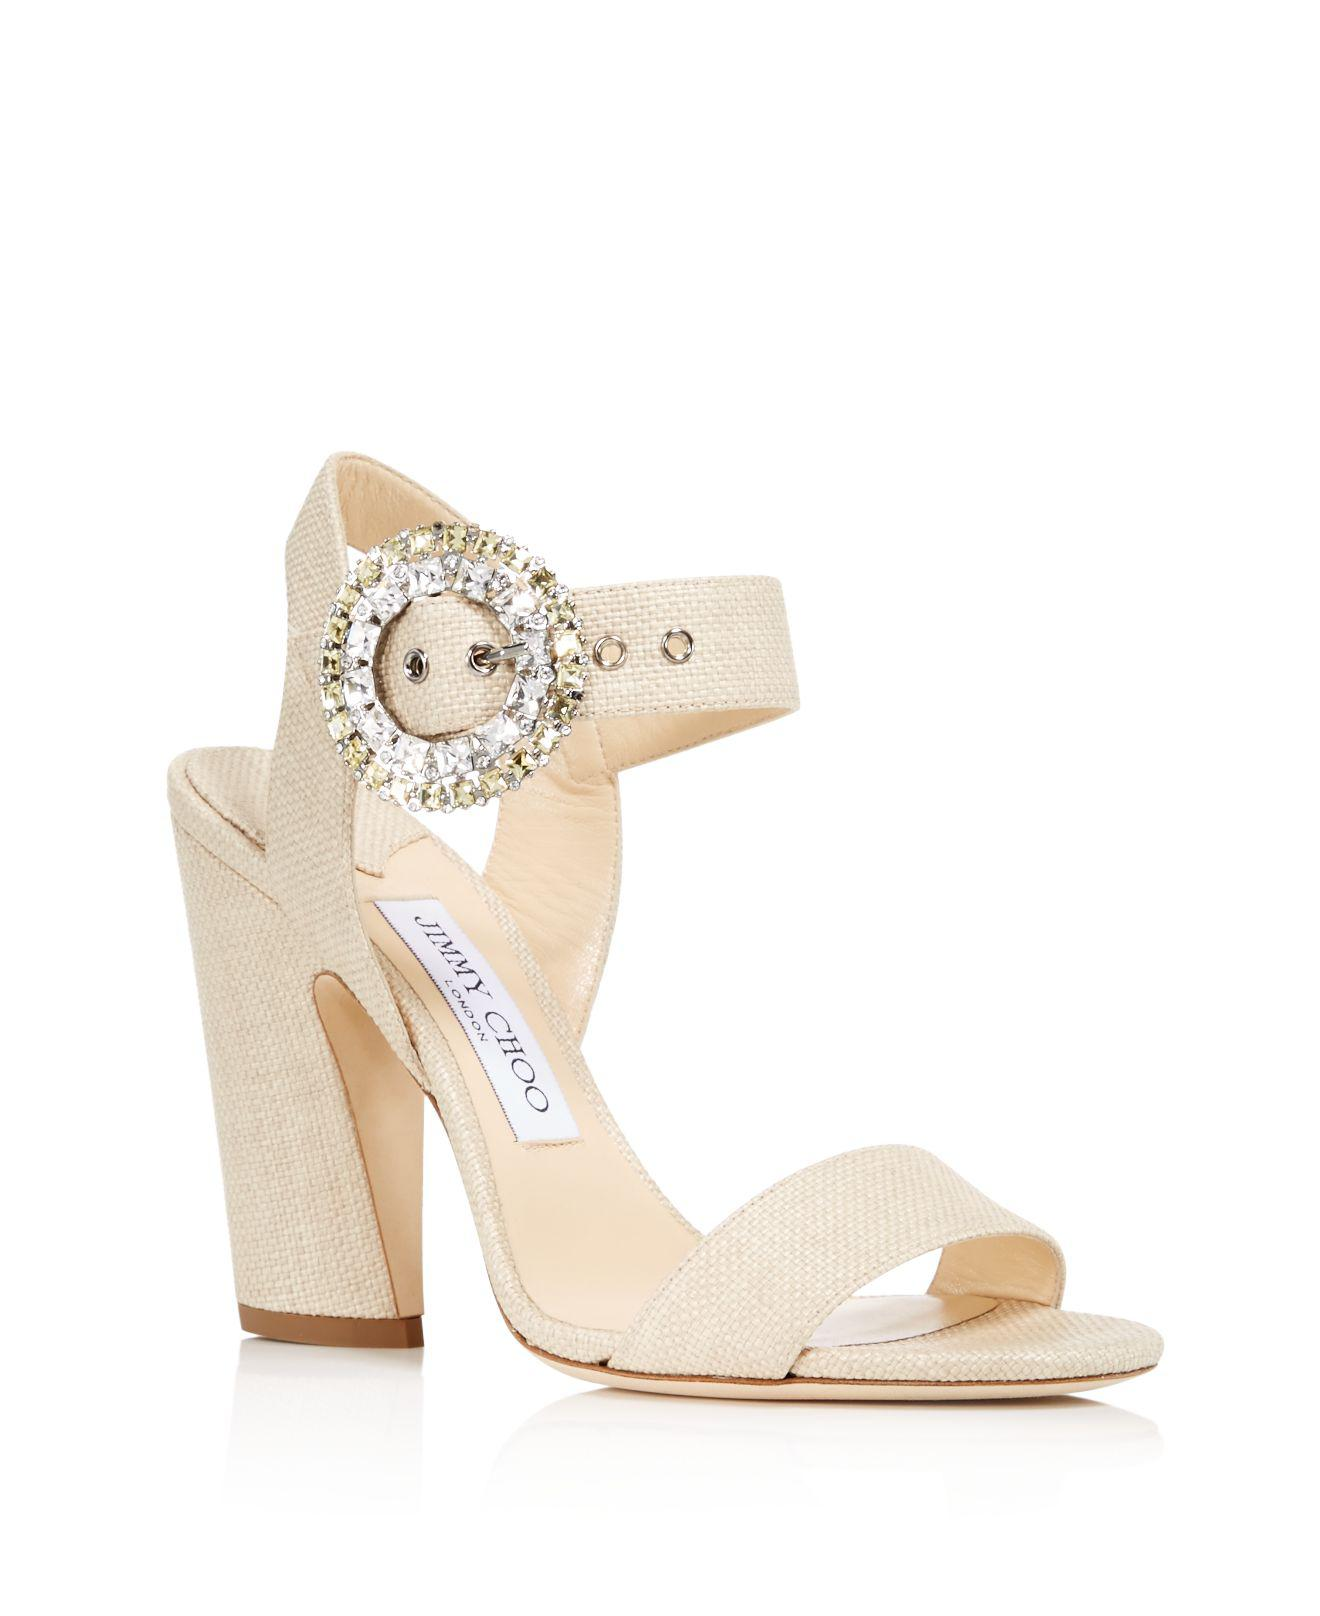 Jimmy choo Mischa Suede Slingback Sandals JunOu0aS0